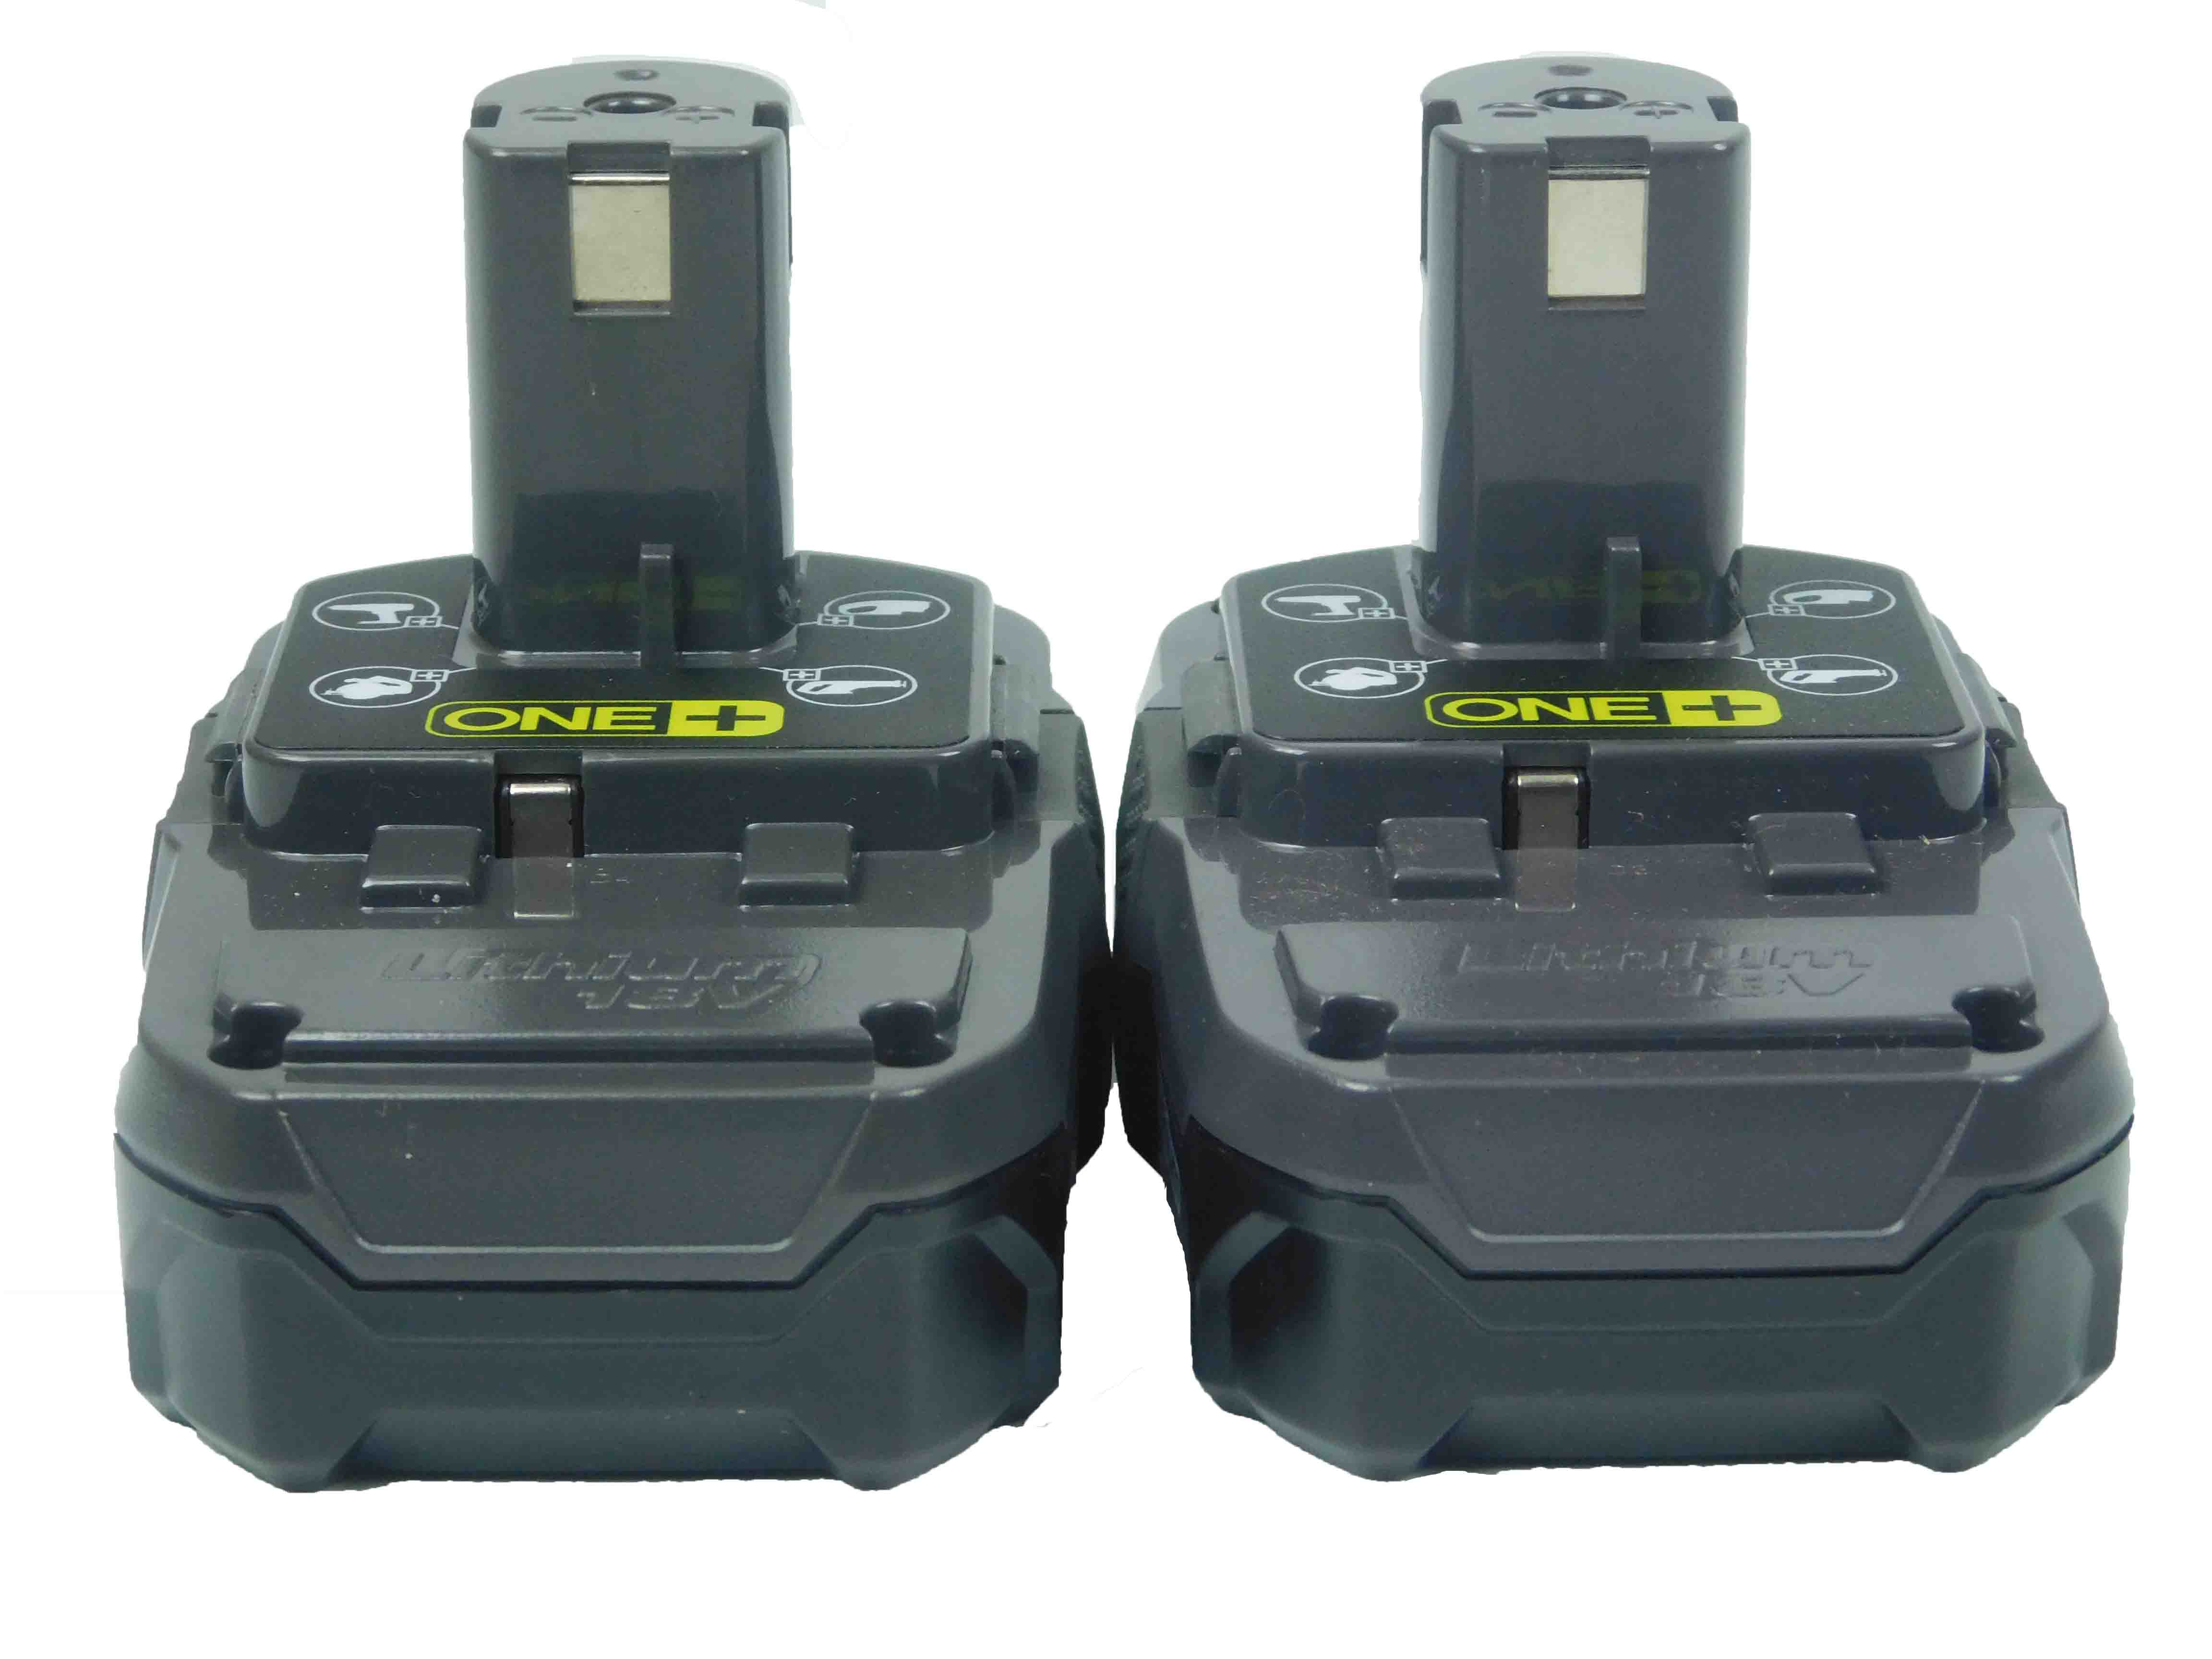 Ryobi-One-P102-18V-Lithium-Ion-Battery-Two-Pack-image-4